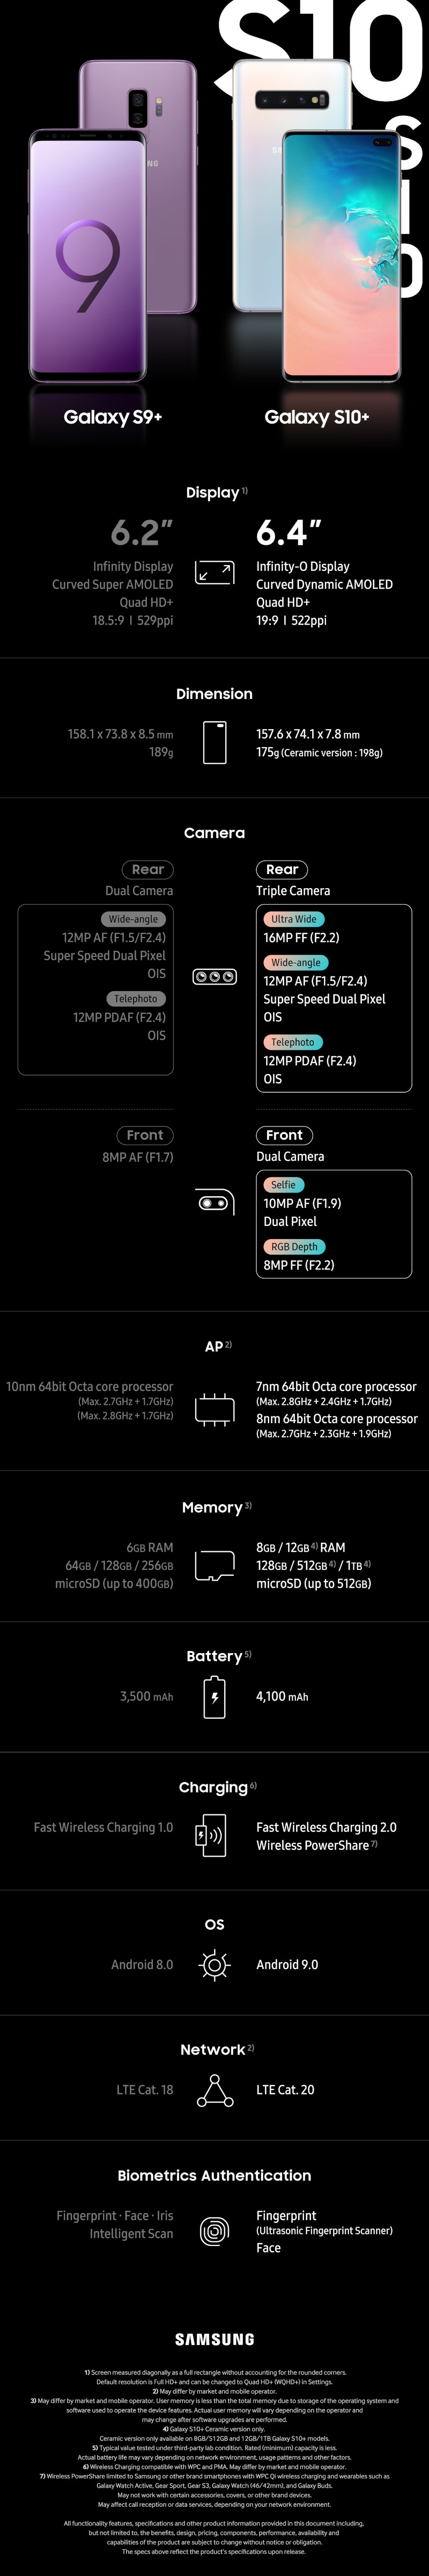 Galaxy S10+ infographic